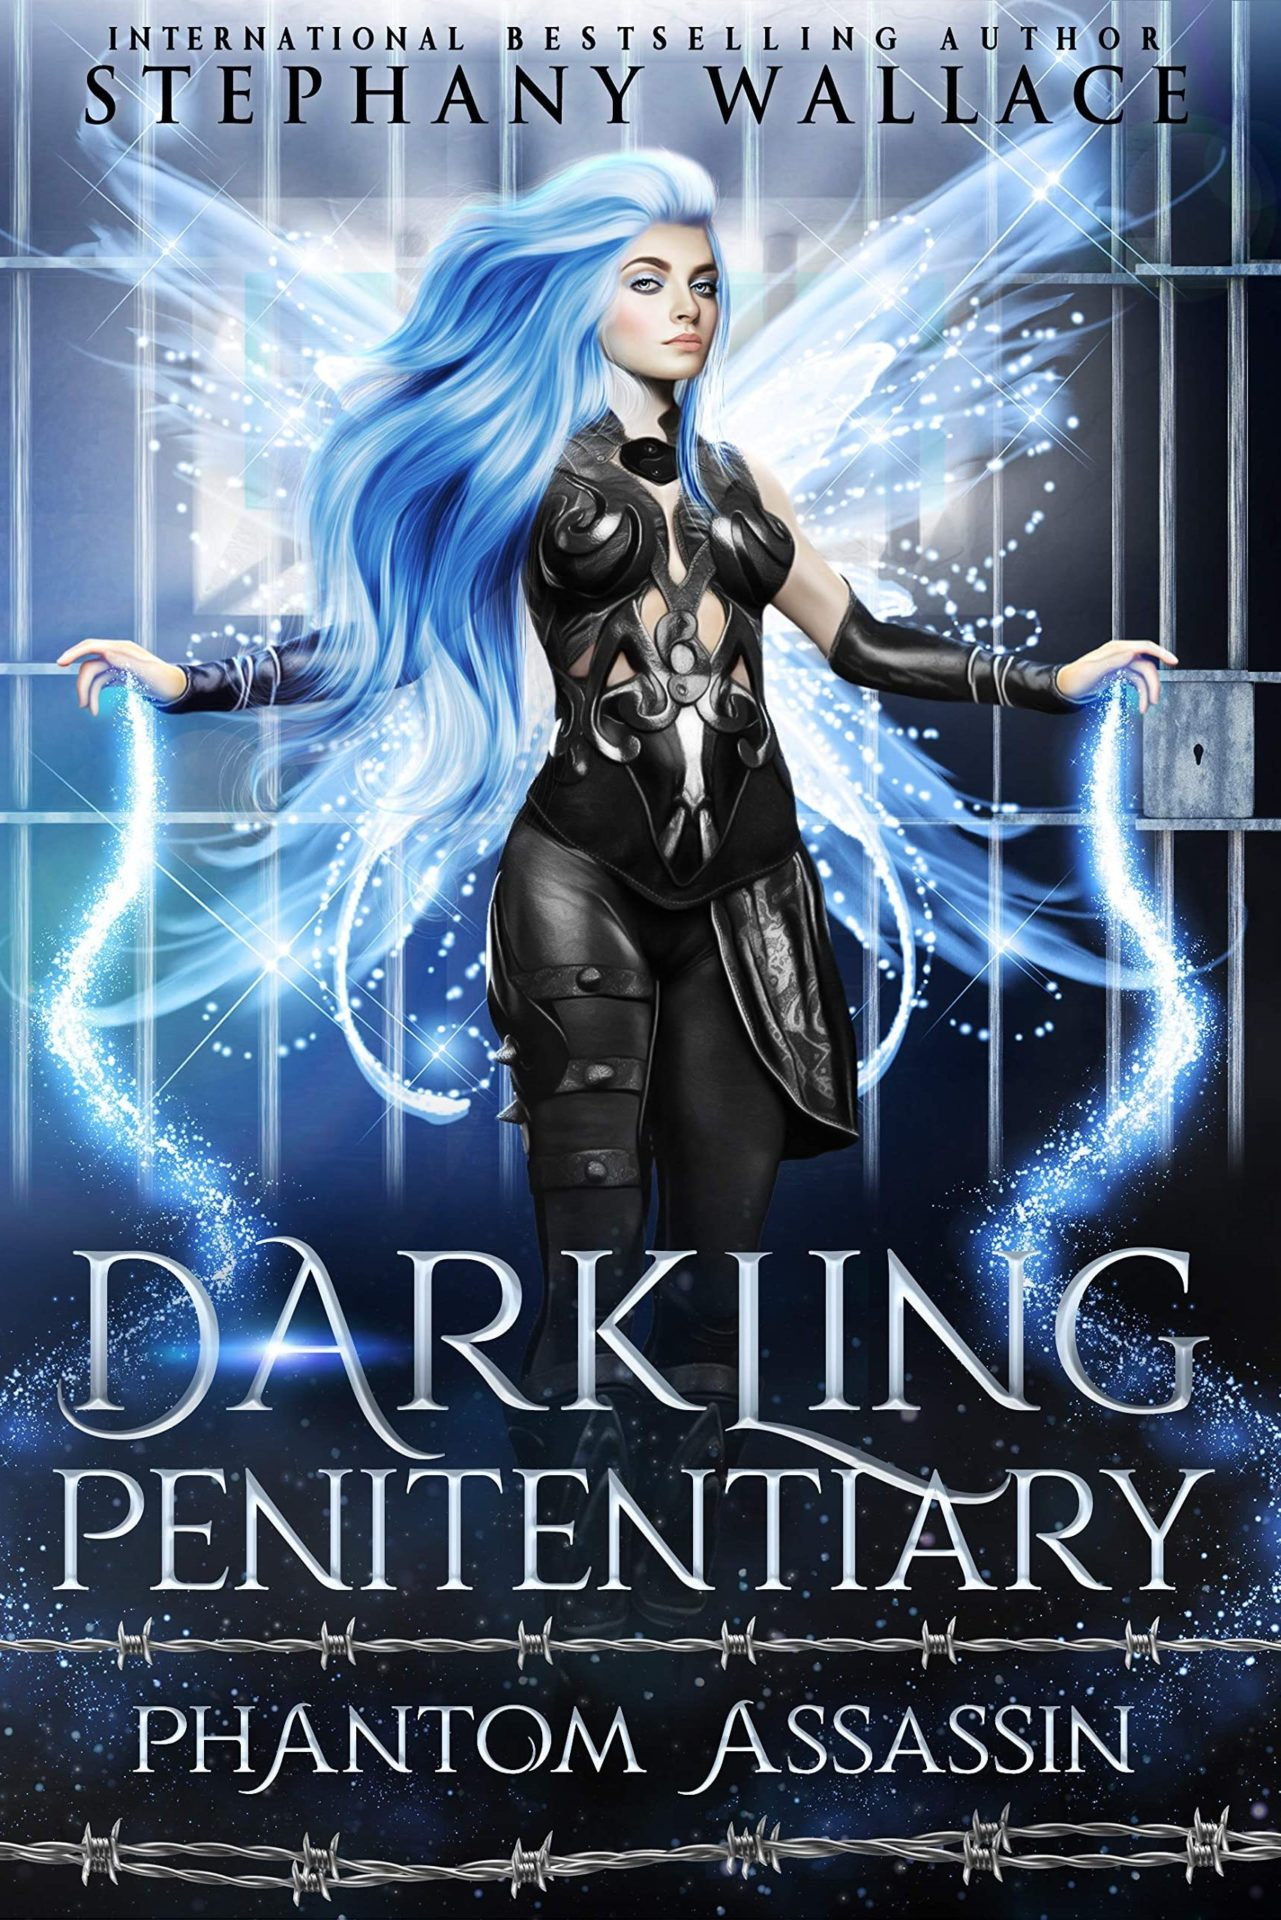 Phantom Assassin (Darkling Penitentiary Book 1) – Stephany Wallace